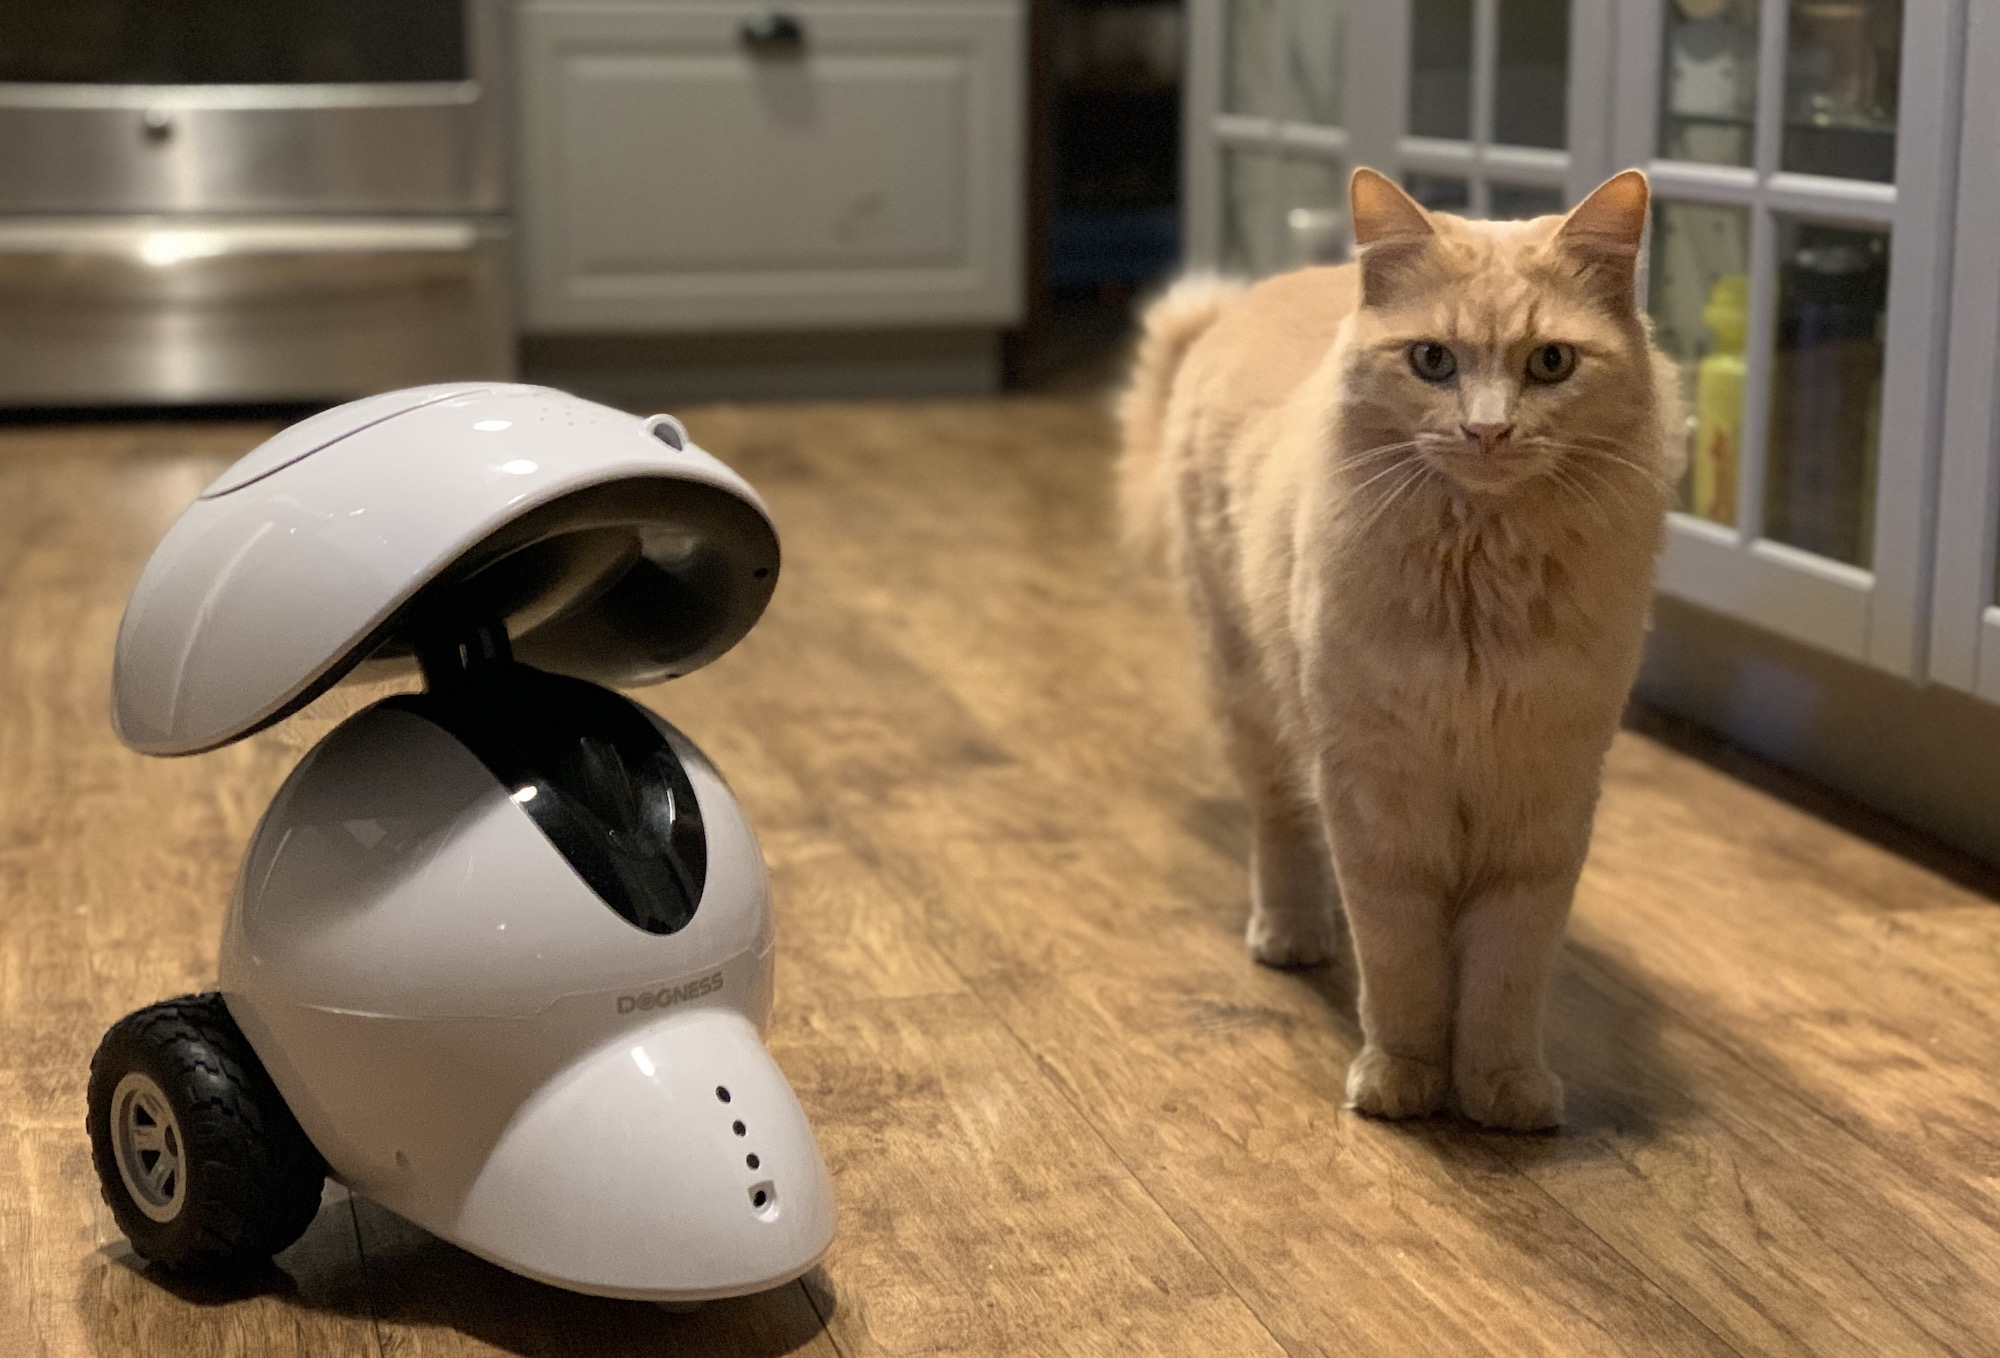 Dogness Smart Pet Robot Review